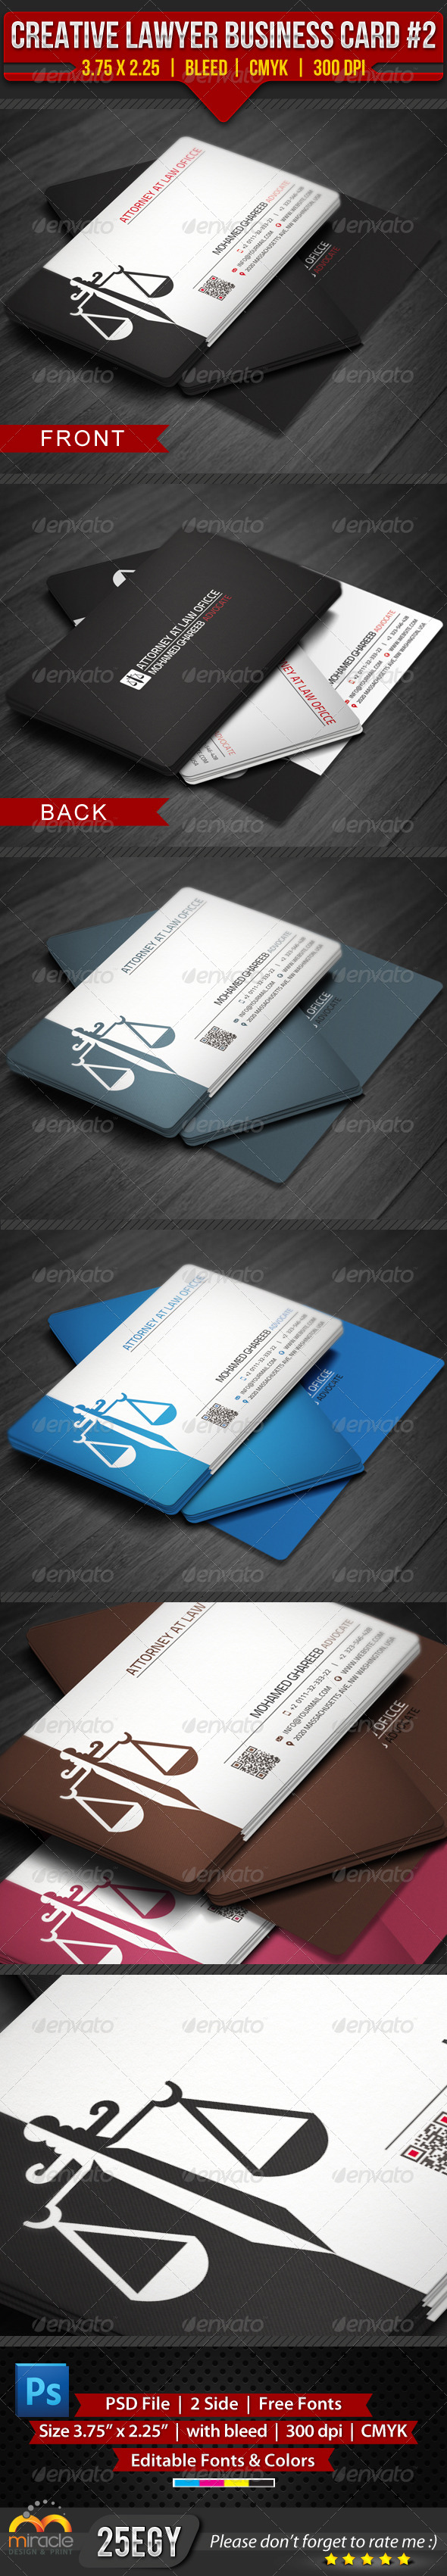 GraphicRiver Creative Lawyer Business Card #2 4063758